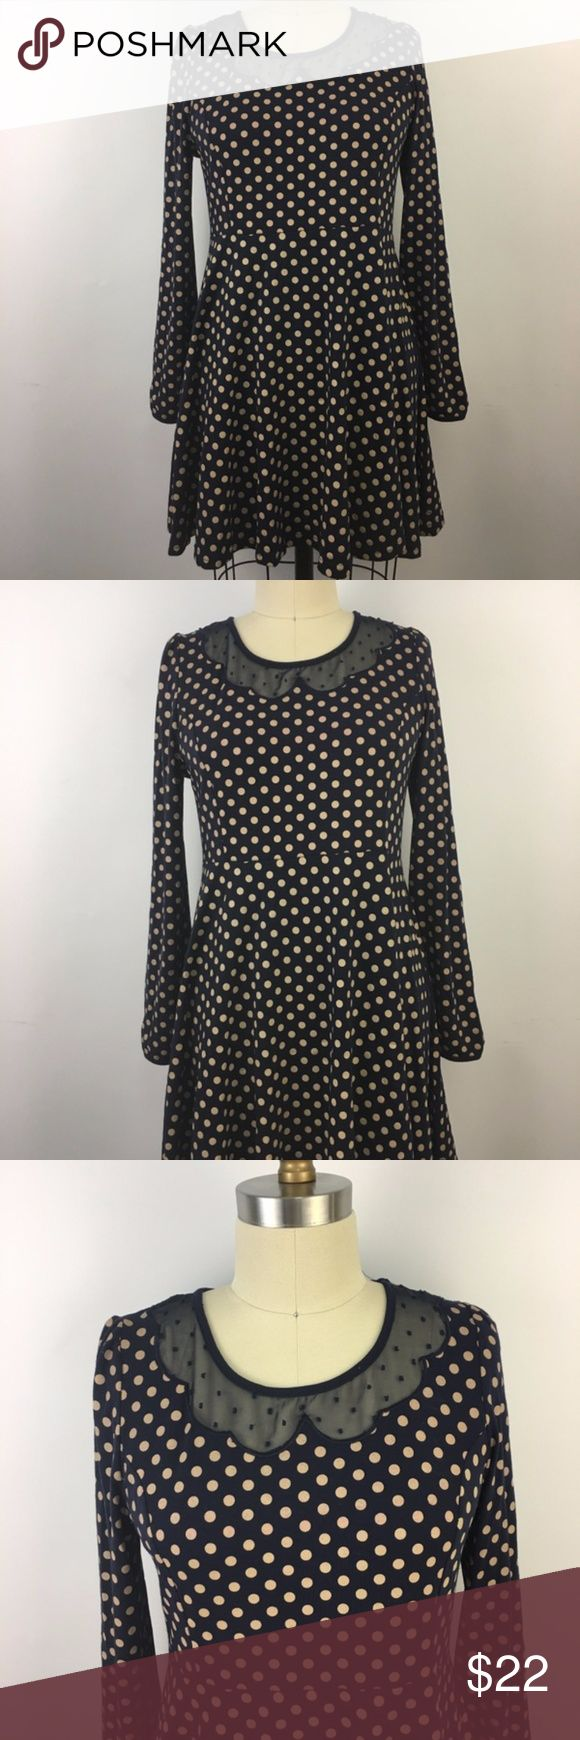 Etam Weekend Dress Navy Blue Tan Polka Dots Sz 8 Etam Weekend Dress Womens Blue Tan Polka Dots Fit N Flare Peter Pan Neck Sz 38 / 8  Measurements :   Chest:  36 inches around Shoulder to Hem:  32 inches long Sleeve:  26 inches long The exact fabric blend is 60.4% Polyester / 35.6% / 4% Spandex Etam Weekend Dresses